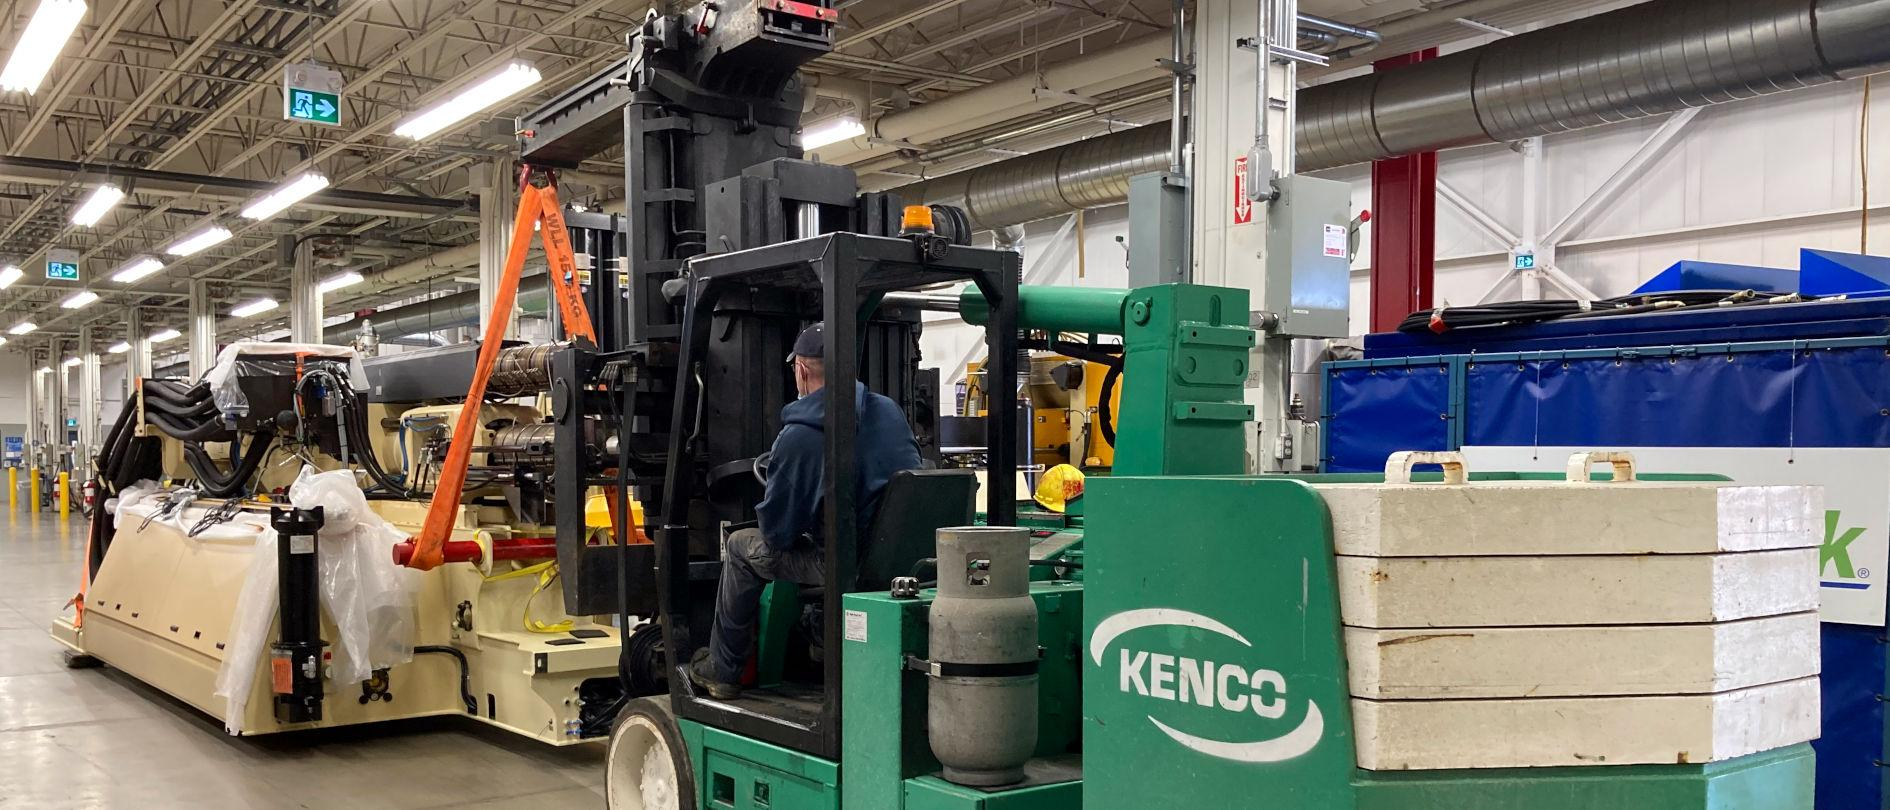 Kenco Machinery Movers and Millwrights Ltd